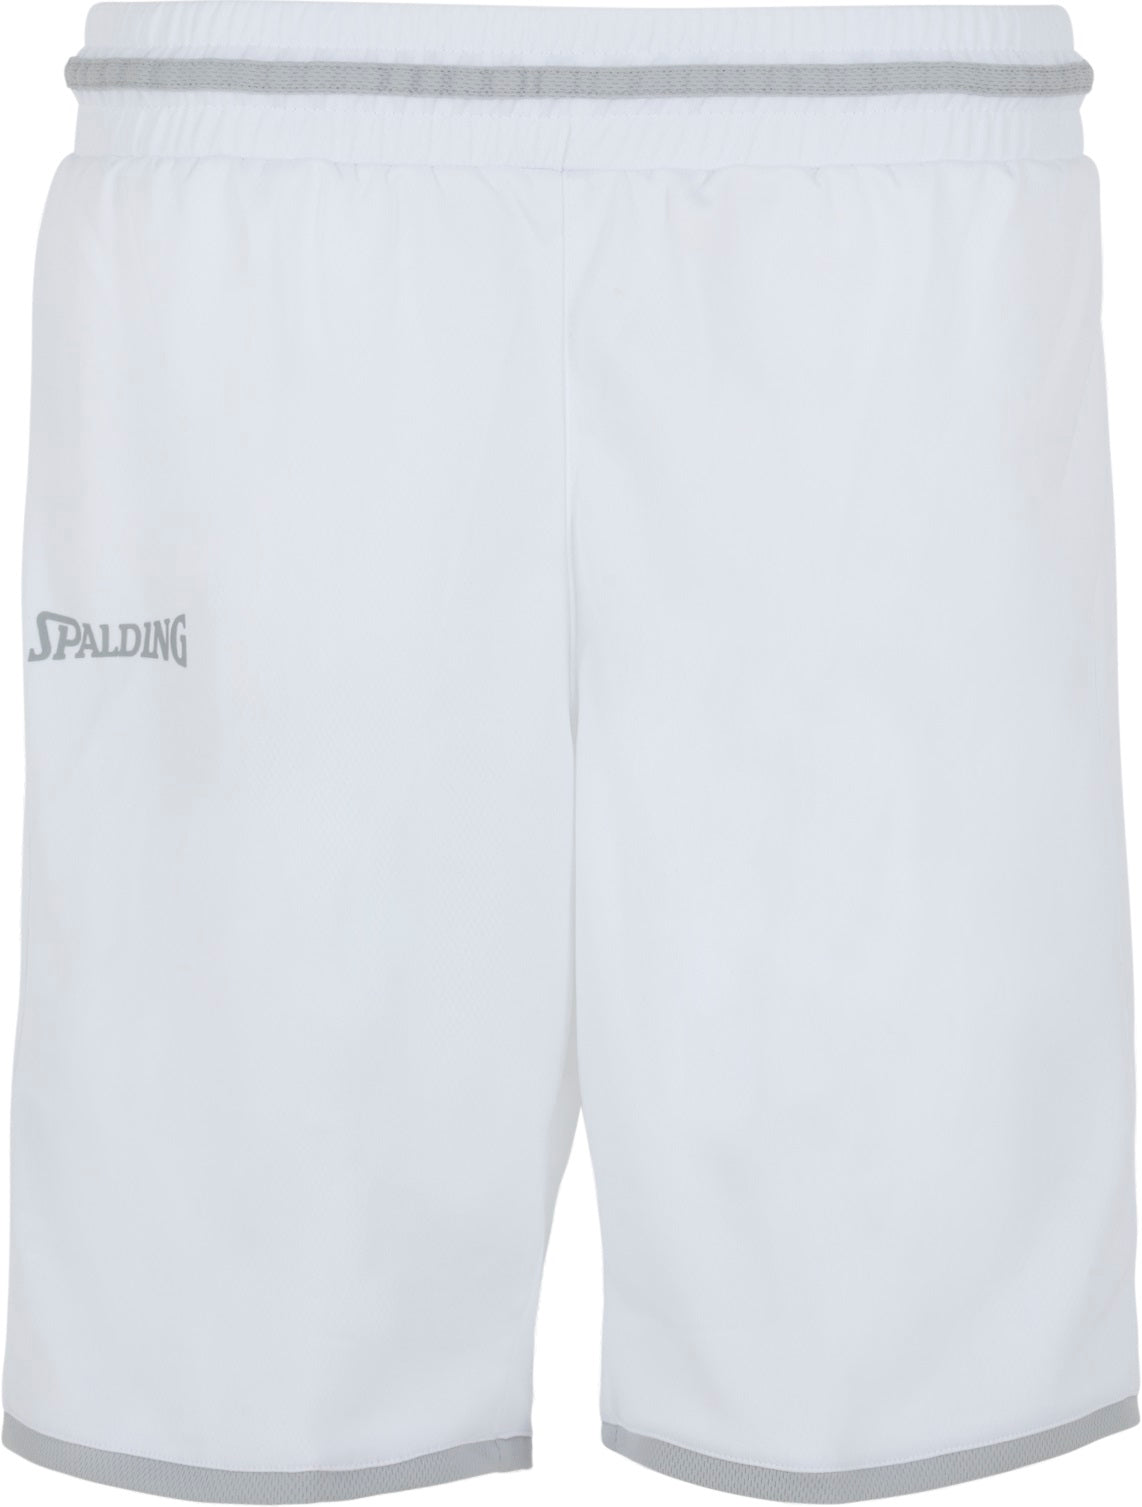 Teamwear - Spalding Women's Move Shorts